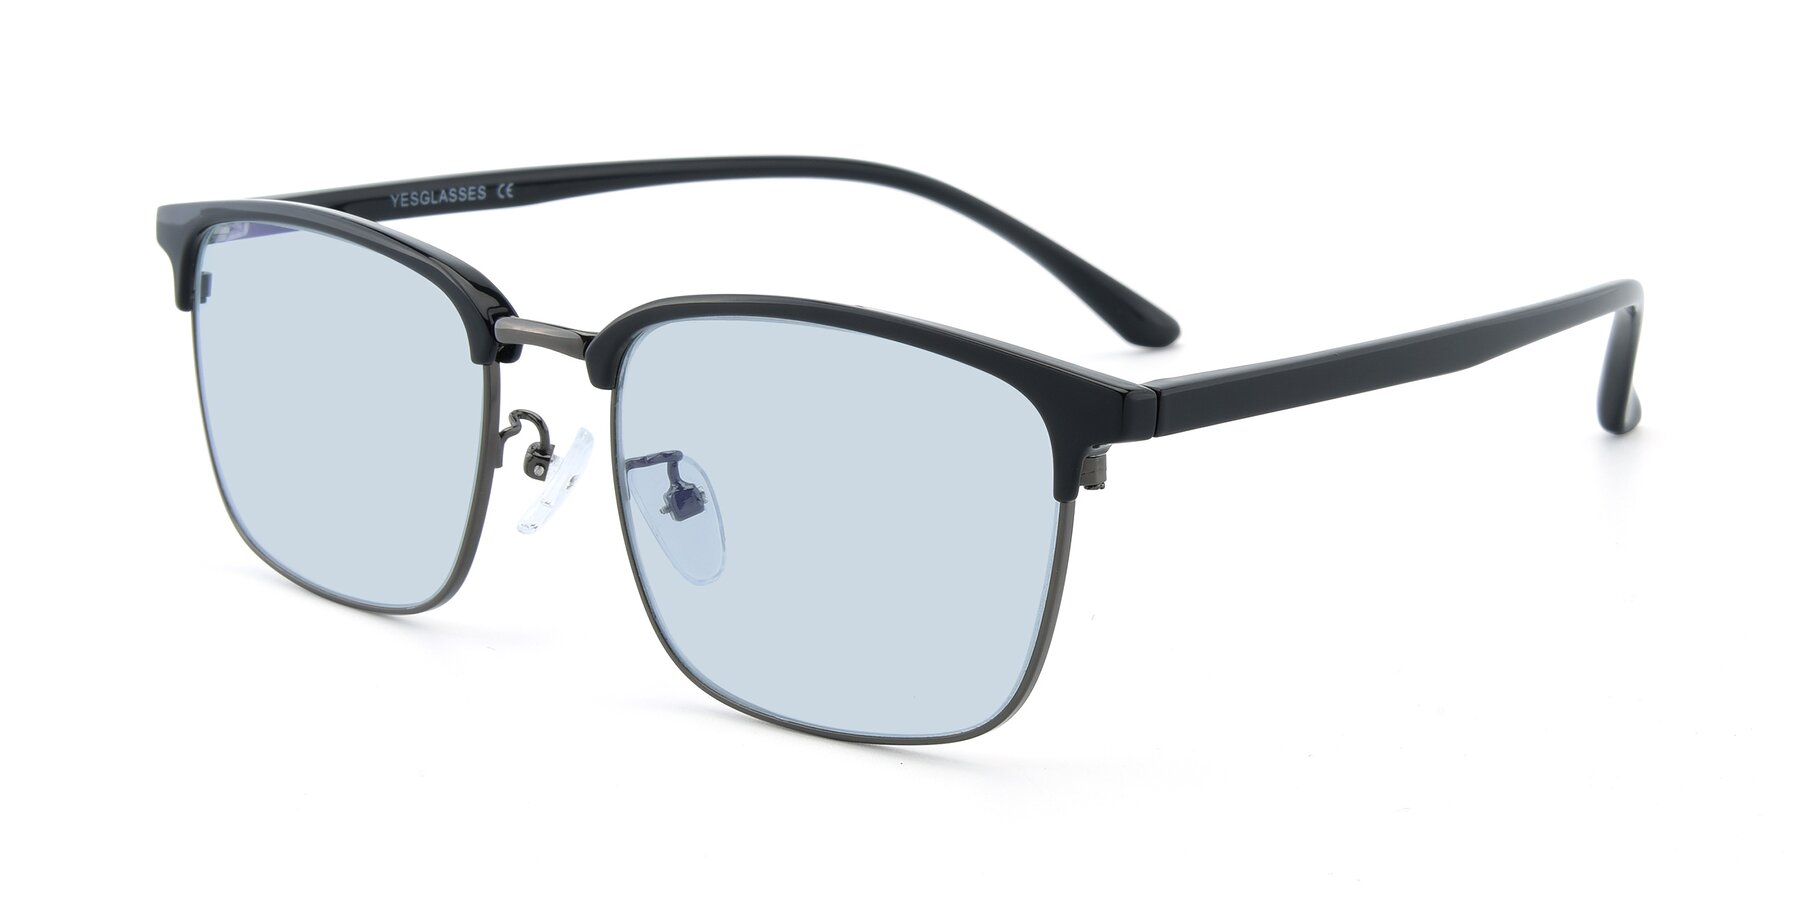 Angle of 00340 in Black-Gun with Light Blue Tinted Lenses